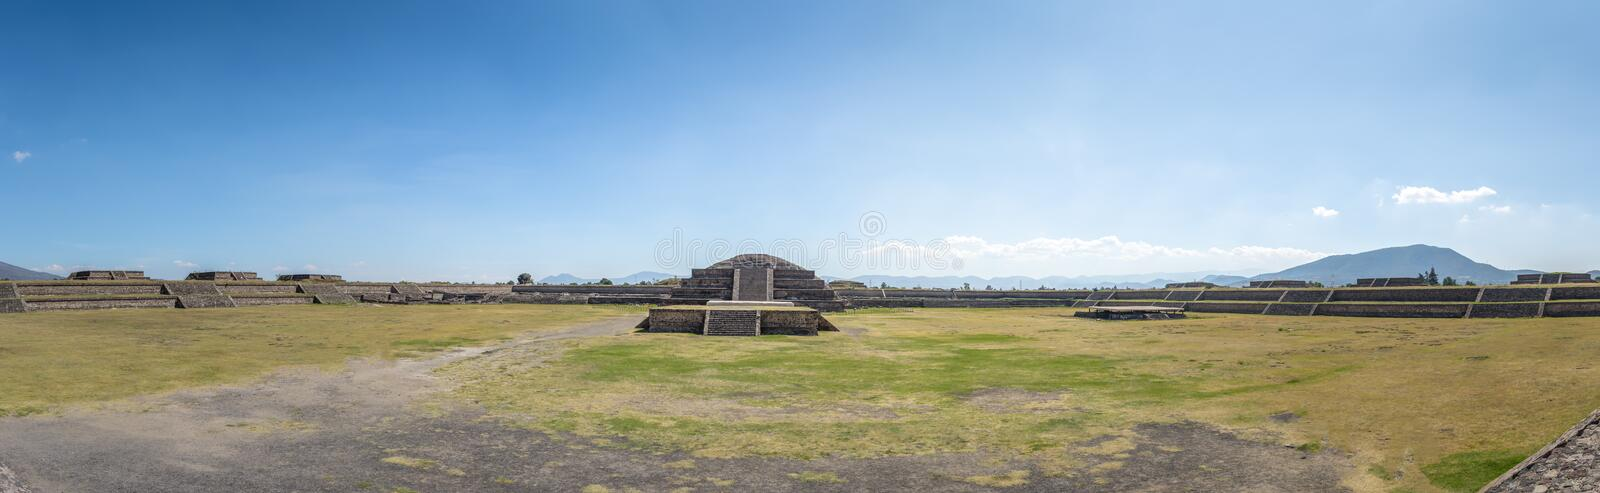 Panoramic view of Citadel and Quetzalcoatl Pyramid at Teotihuacan - Mexico City, Mexico royalty free stock images